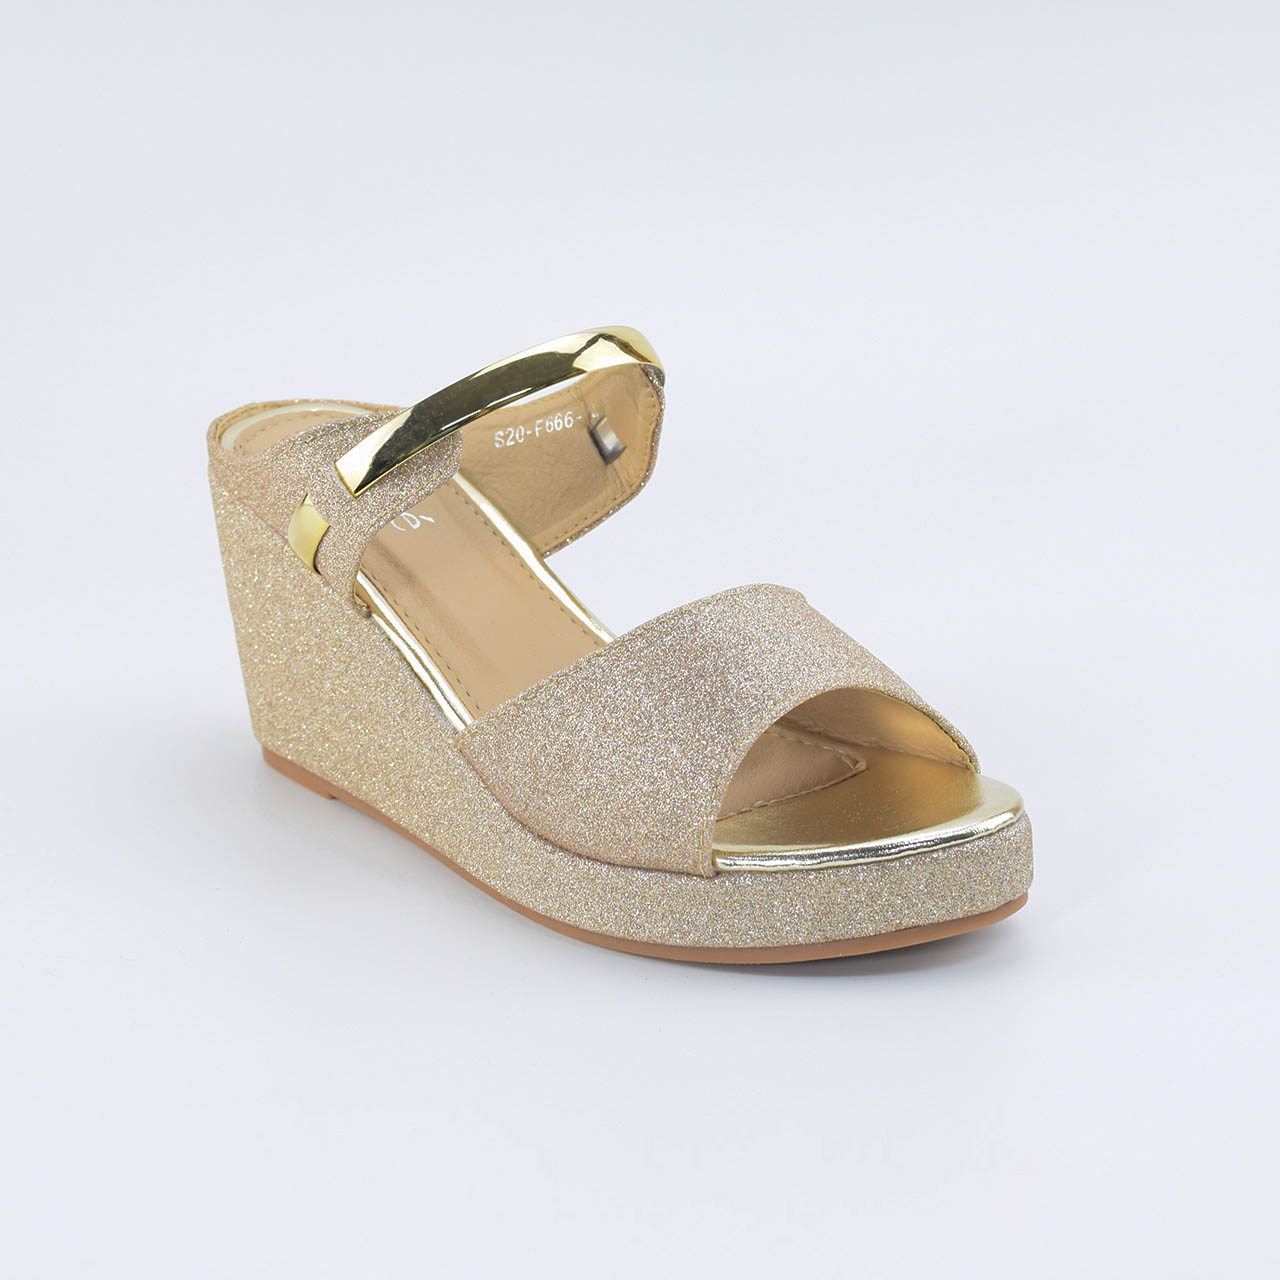 Maeve Wedges in Gold